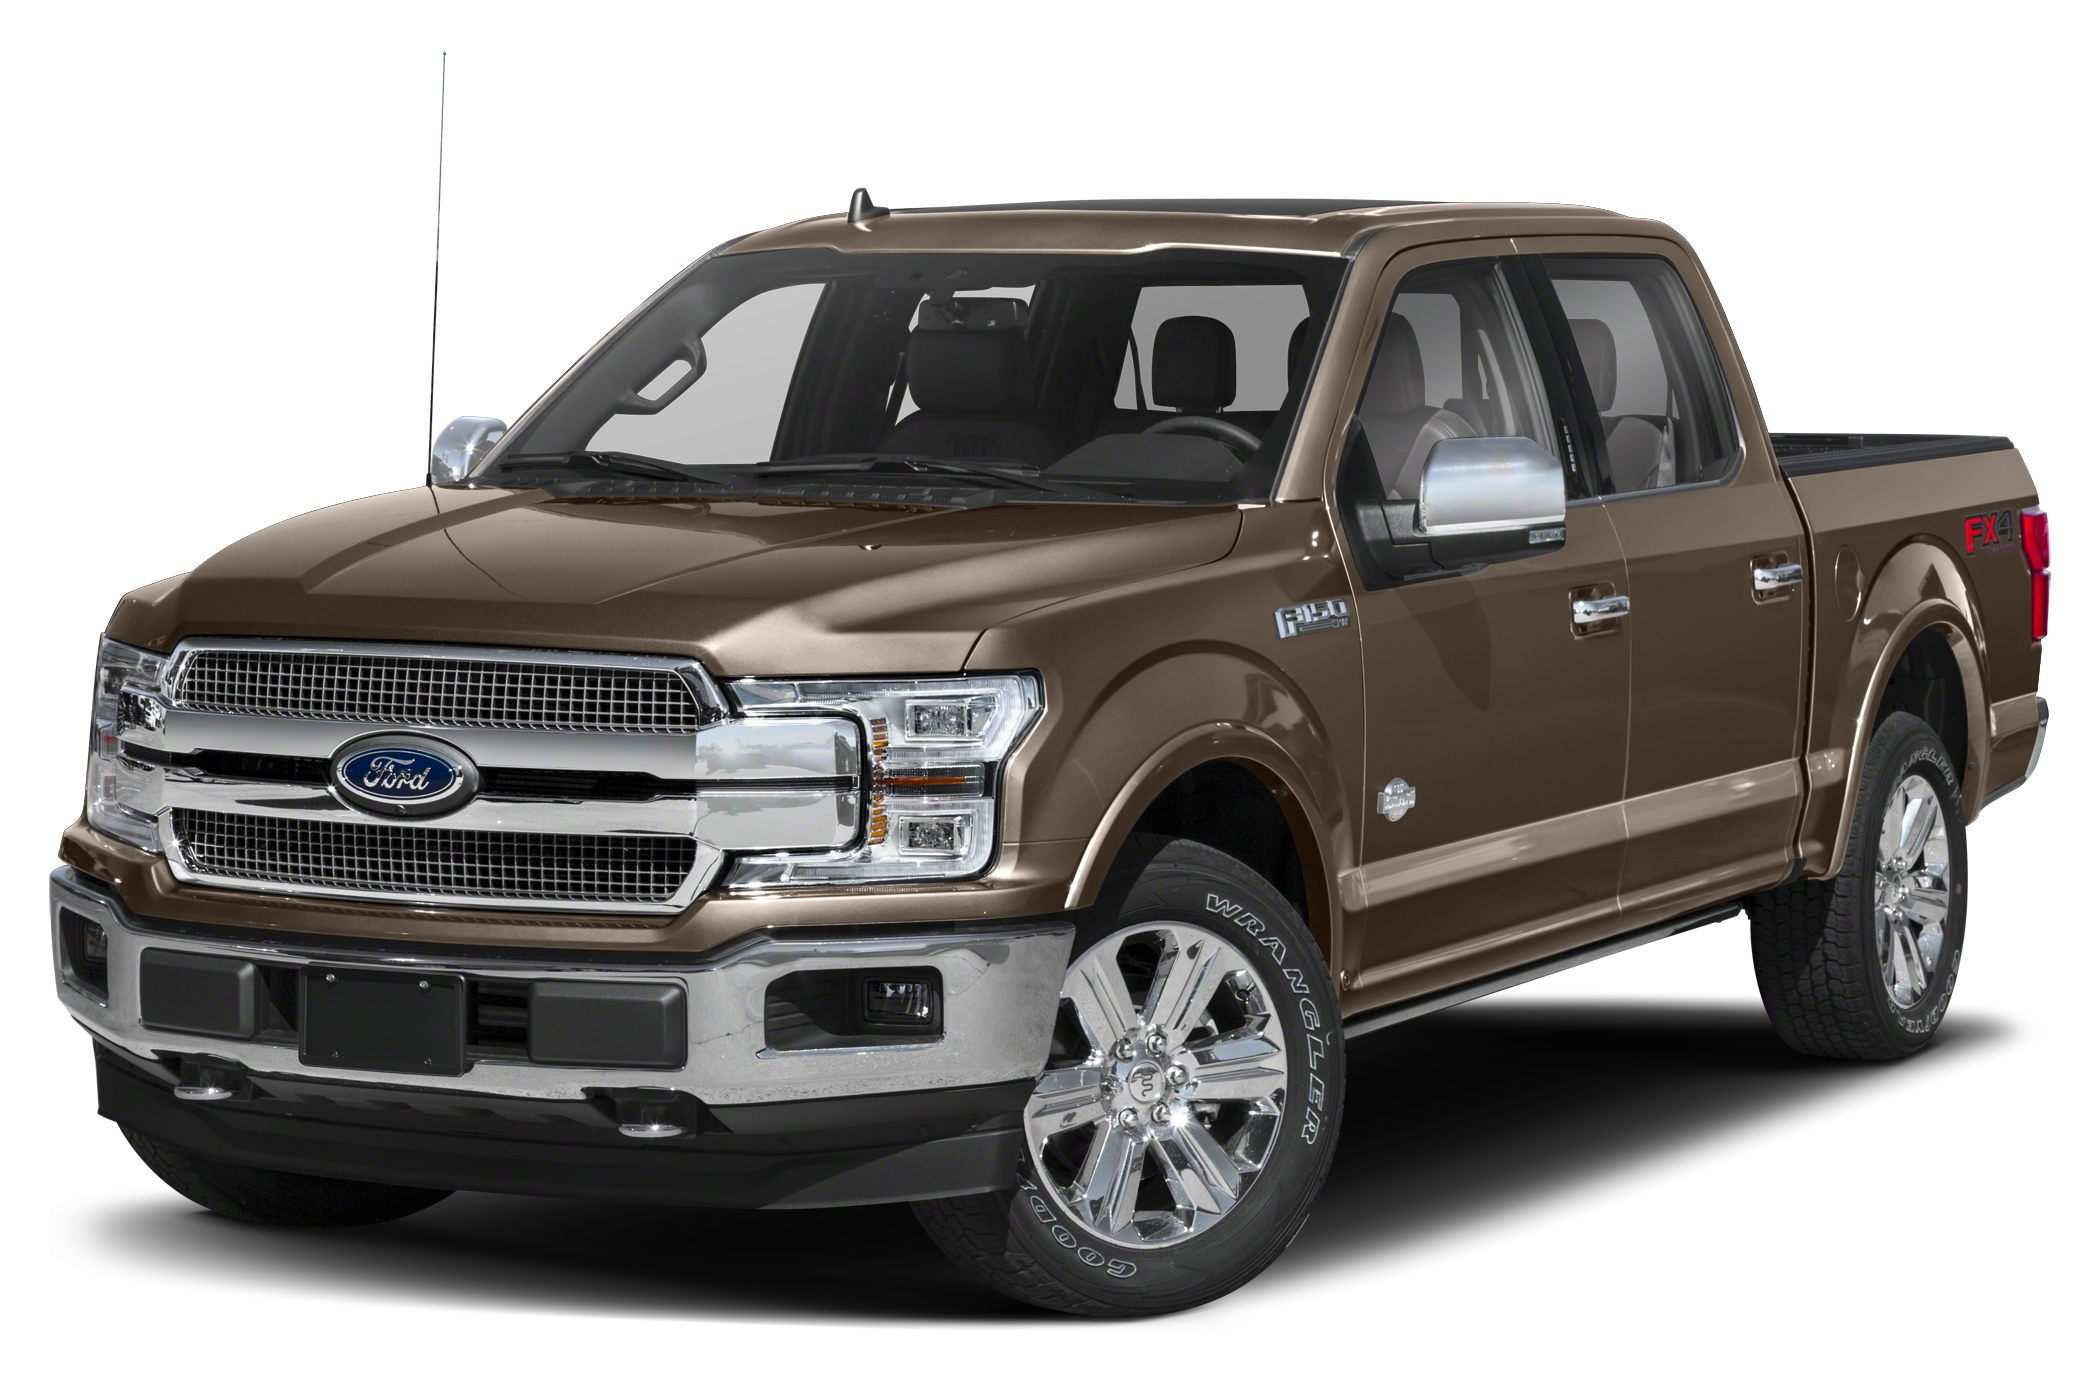 29 All New 2019 Ford F150 King Ranch Price Design And Review